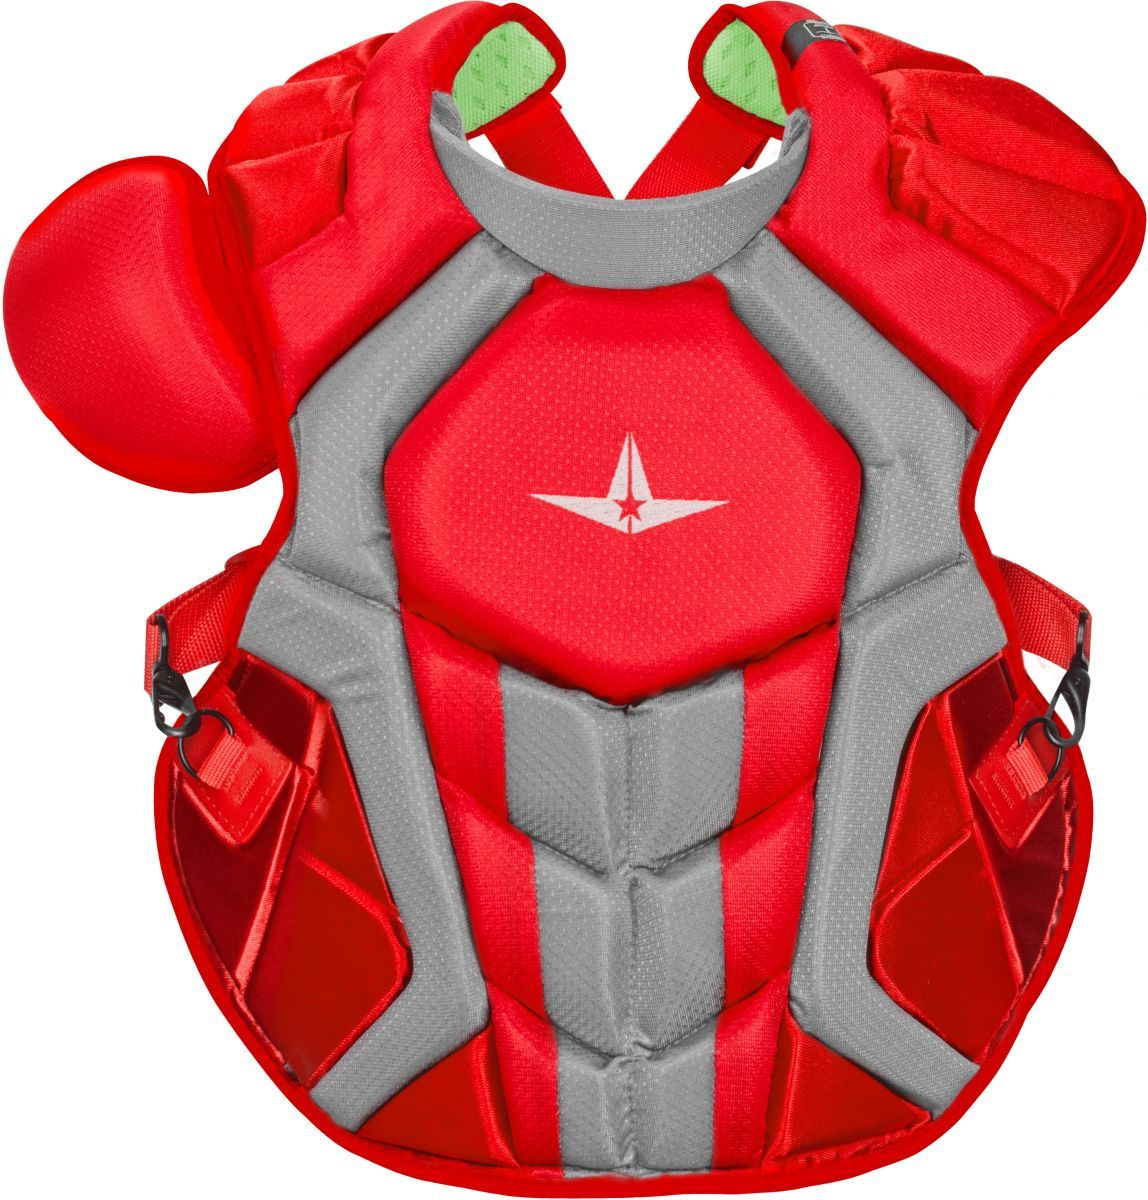 """Allstar System7 Axis CC 16.5/"""" Adult Baseball Catcher/'s Chest Protector CPCC40PRO"""